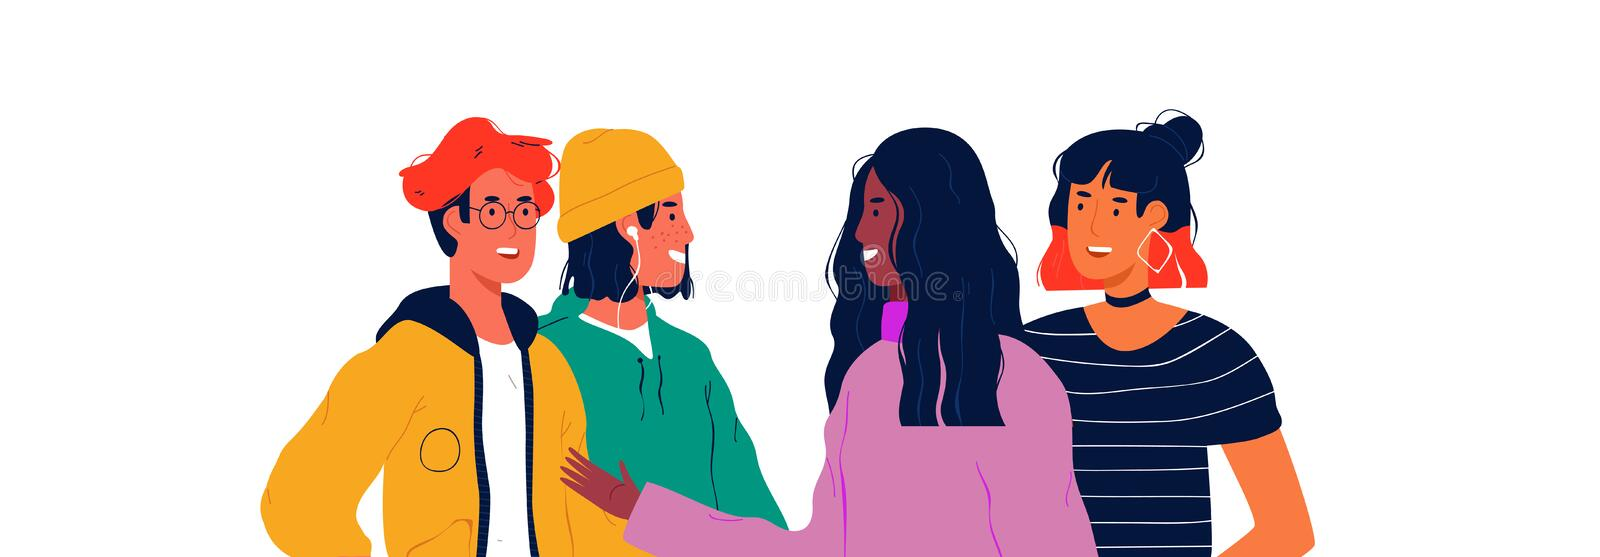 Diverse happy teen people group portrait concept royalty free illustration